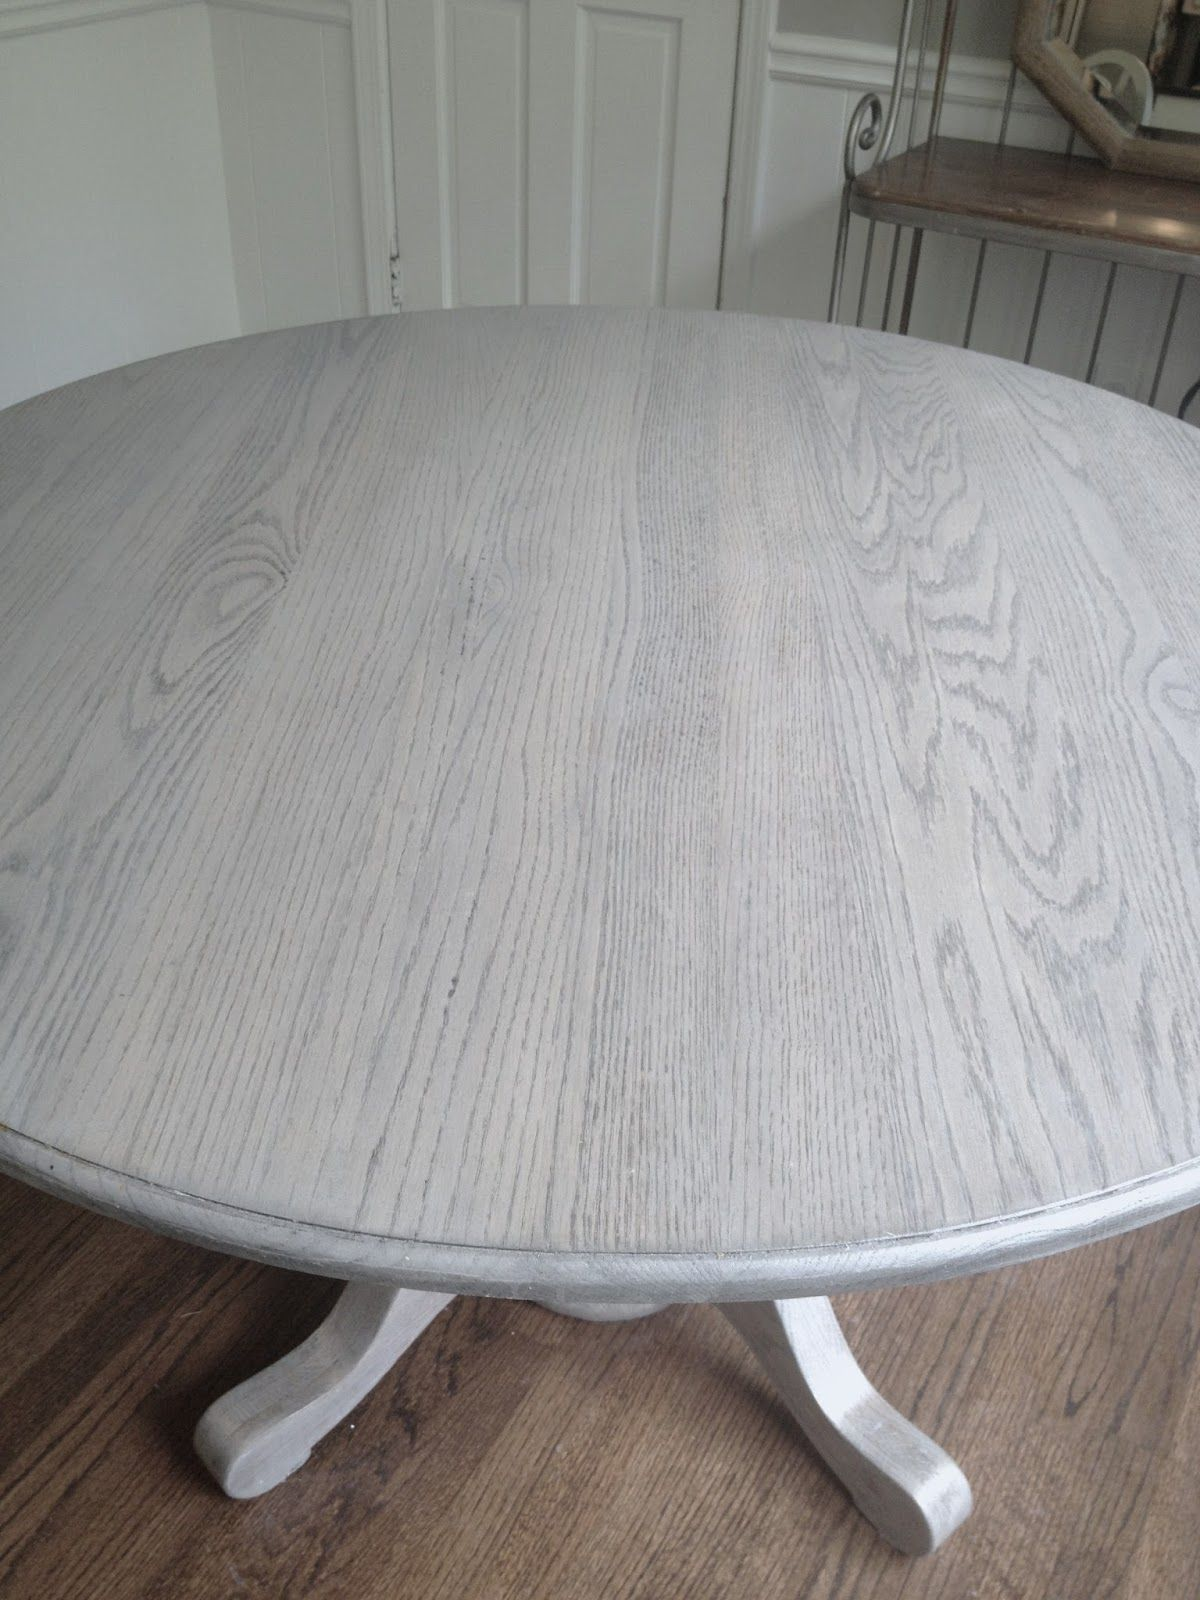 Refinishing Dining Table GrayLong And Found DIY Kitchen